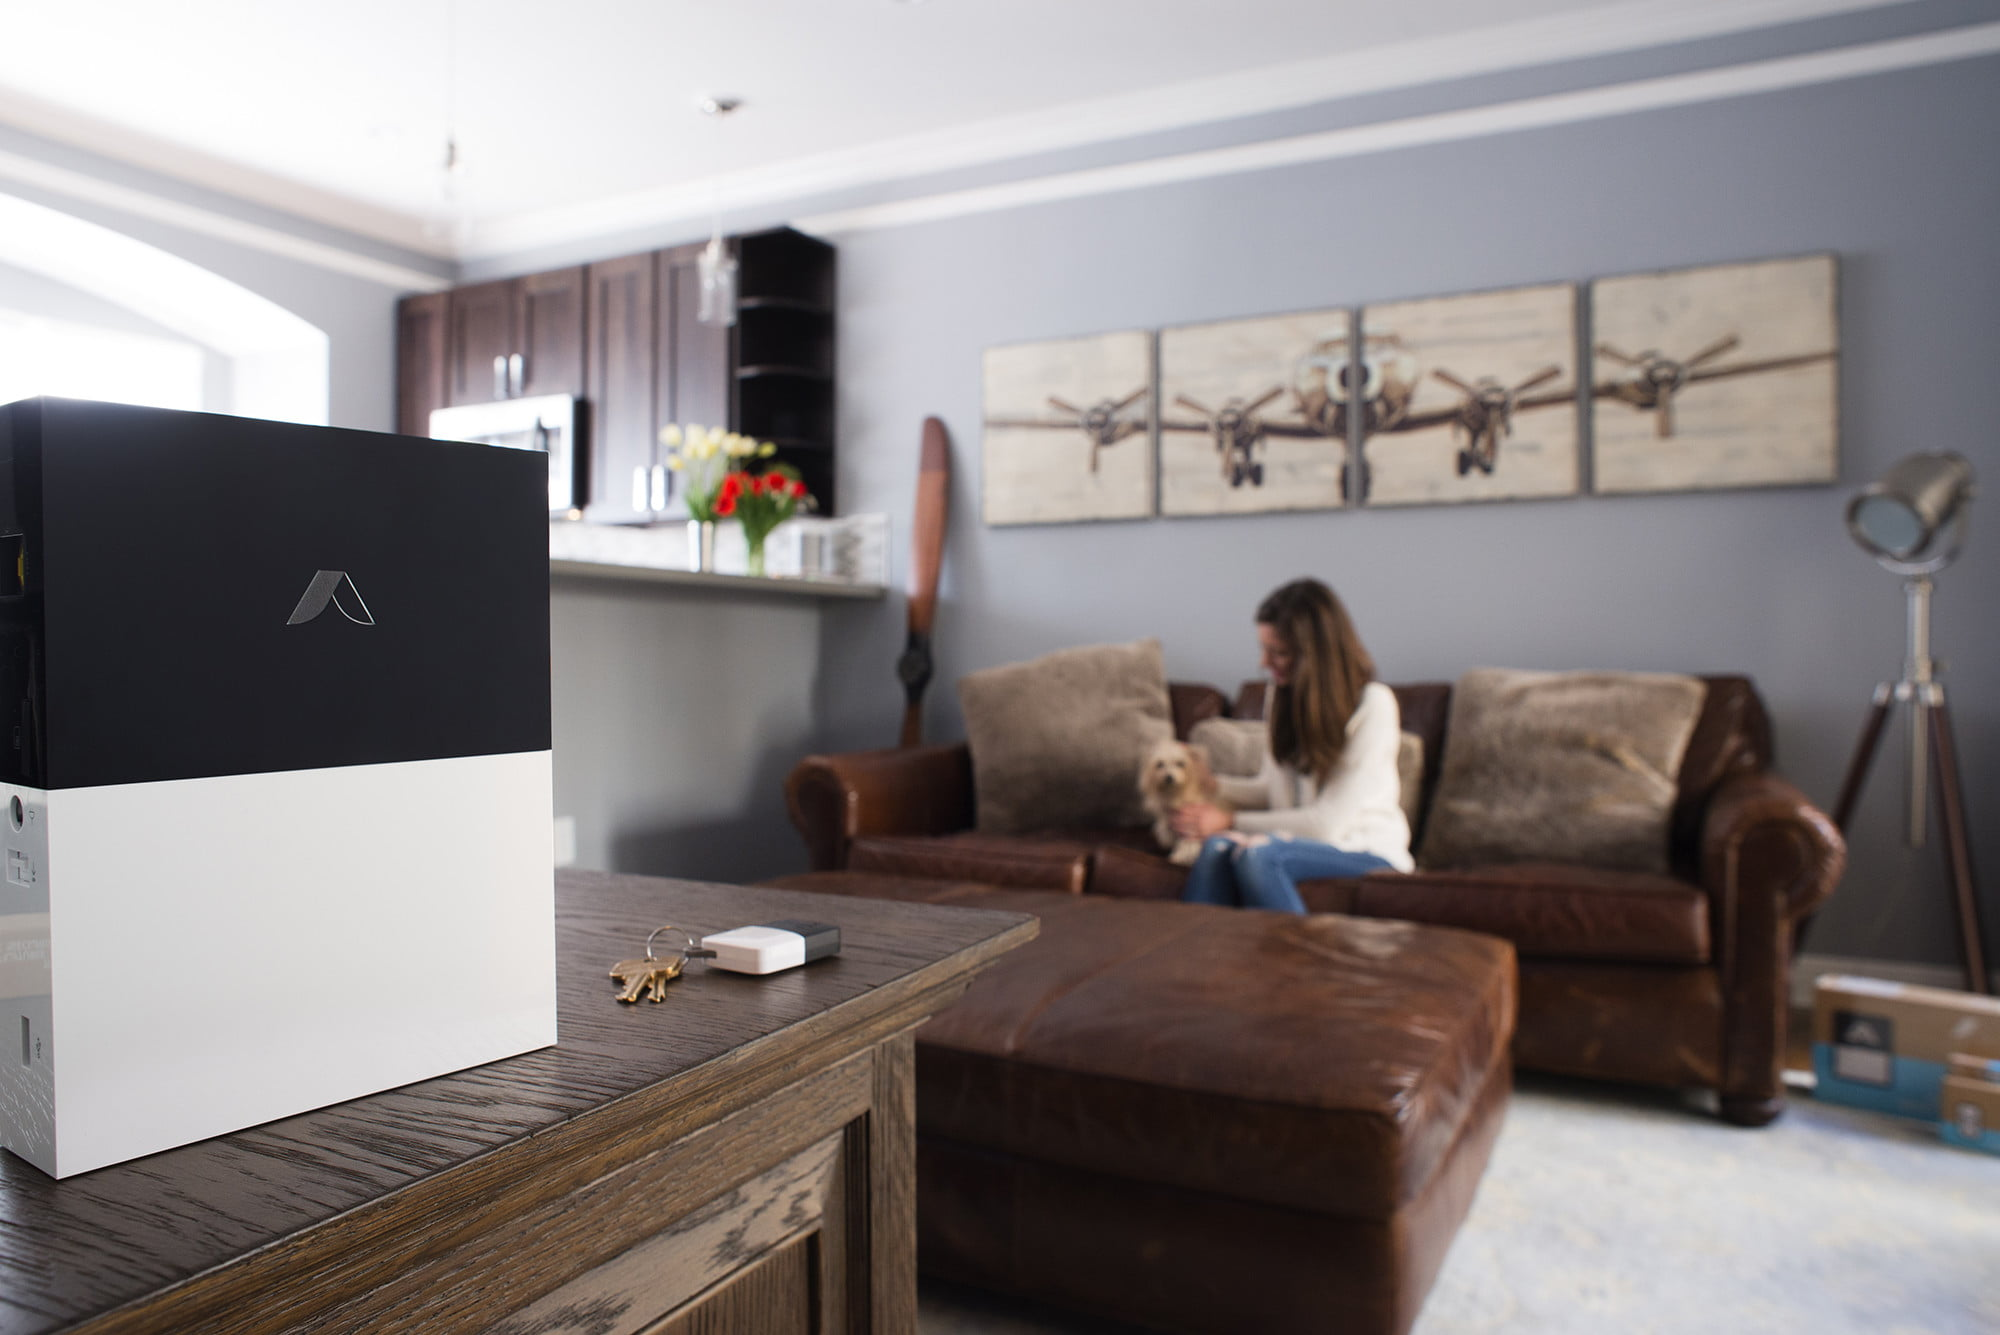 abode systems gateway upgrade essentials kit  lifestyle livingroom high res